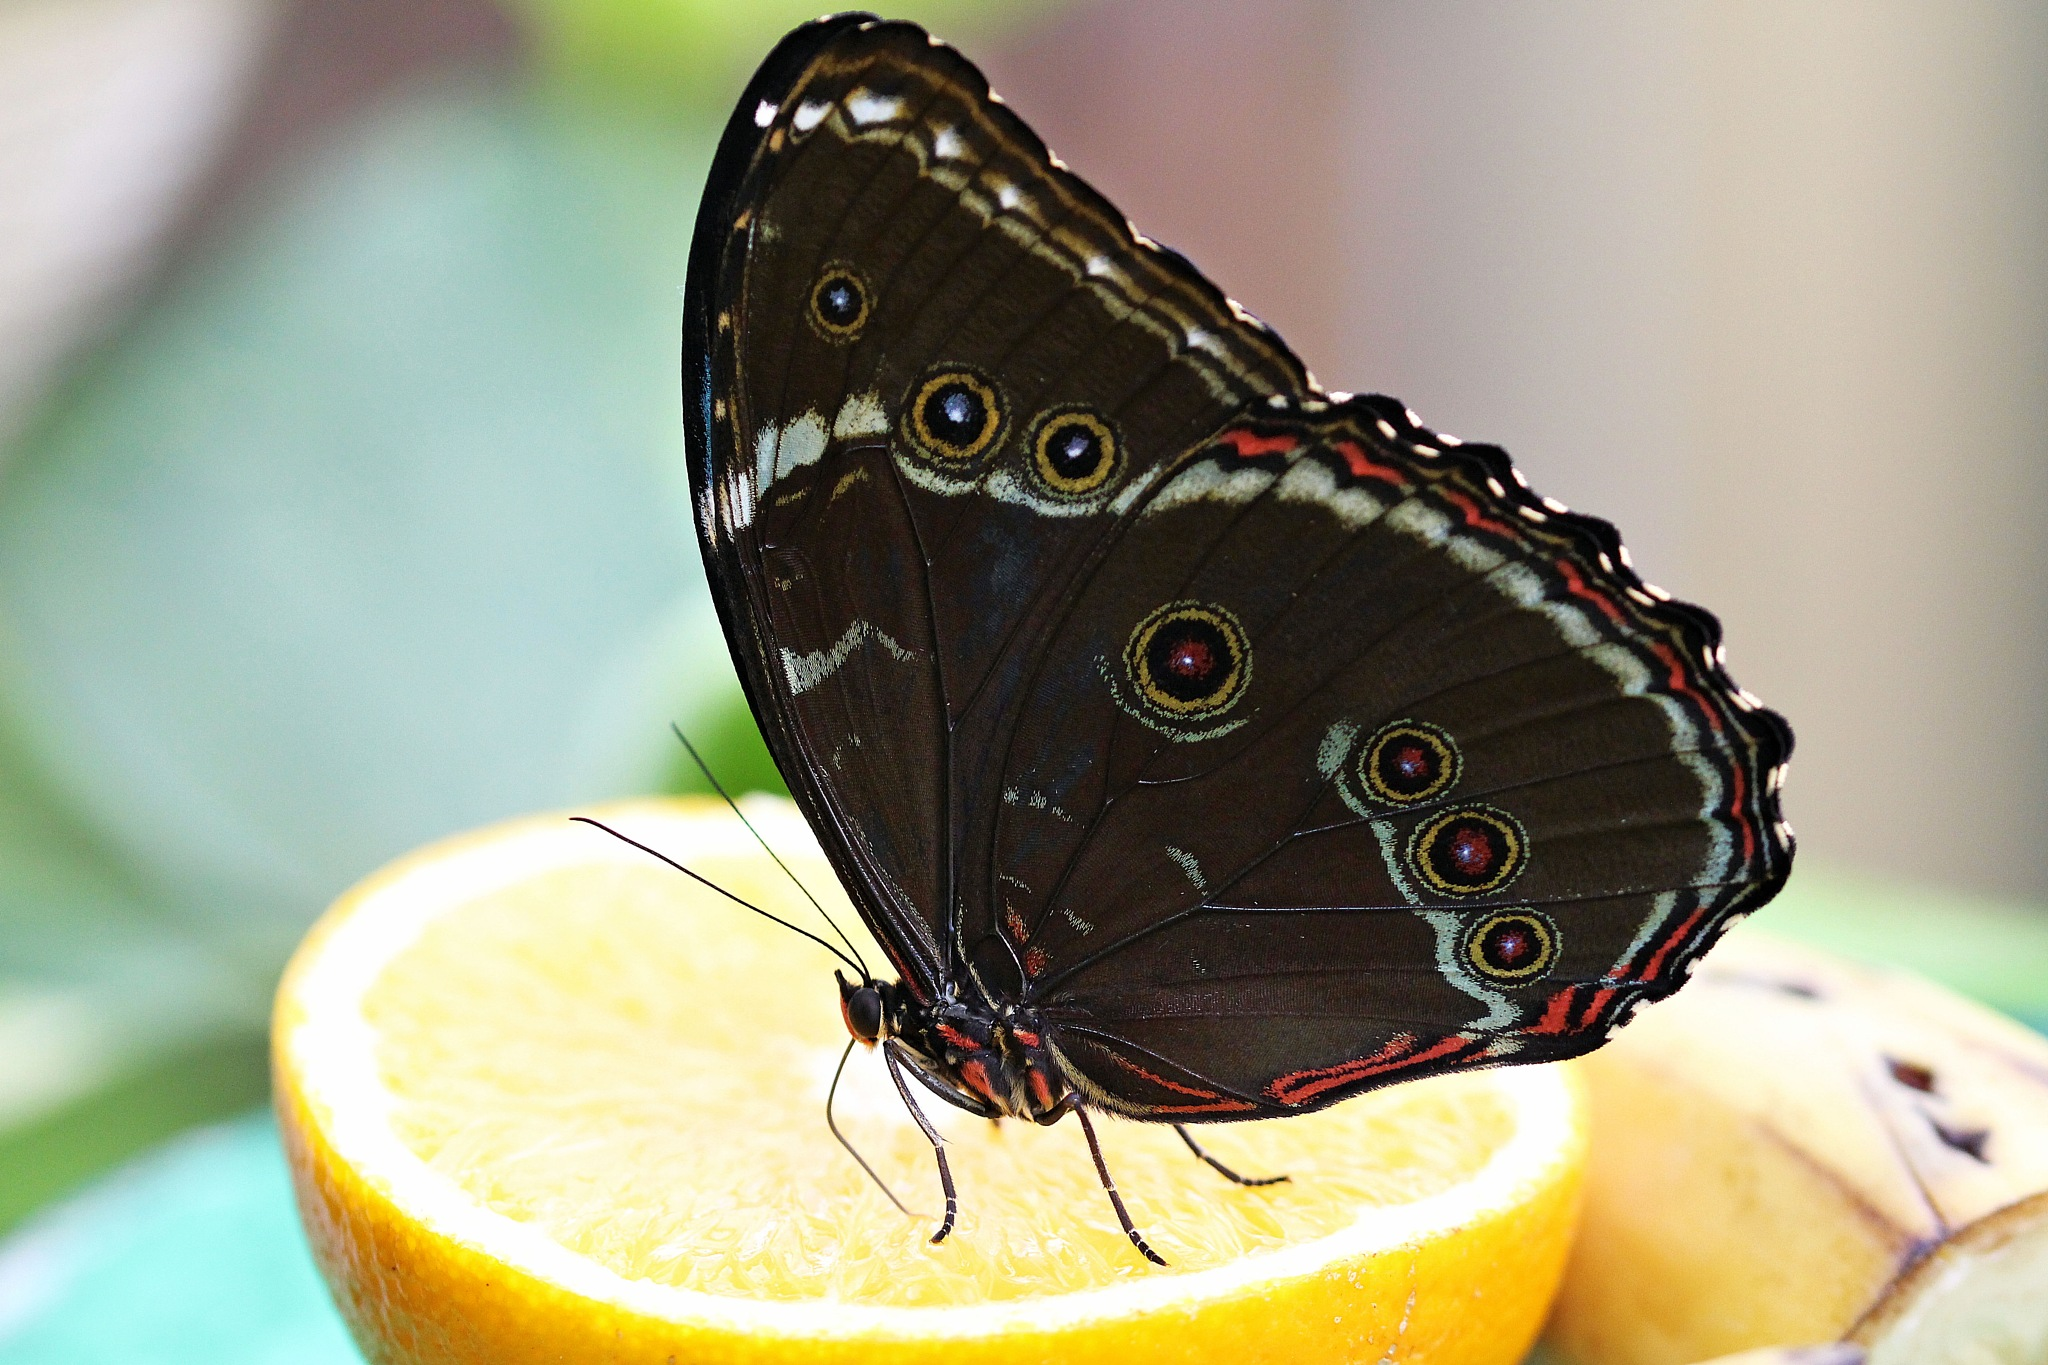 Madame butterfly by Giuseppe Criseo